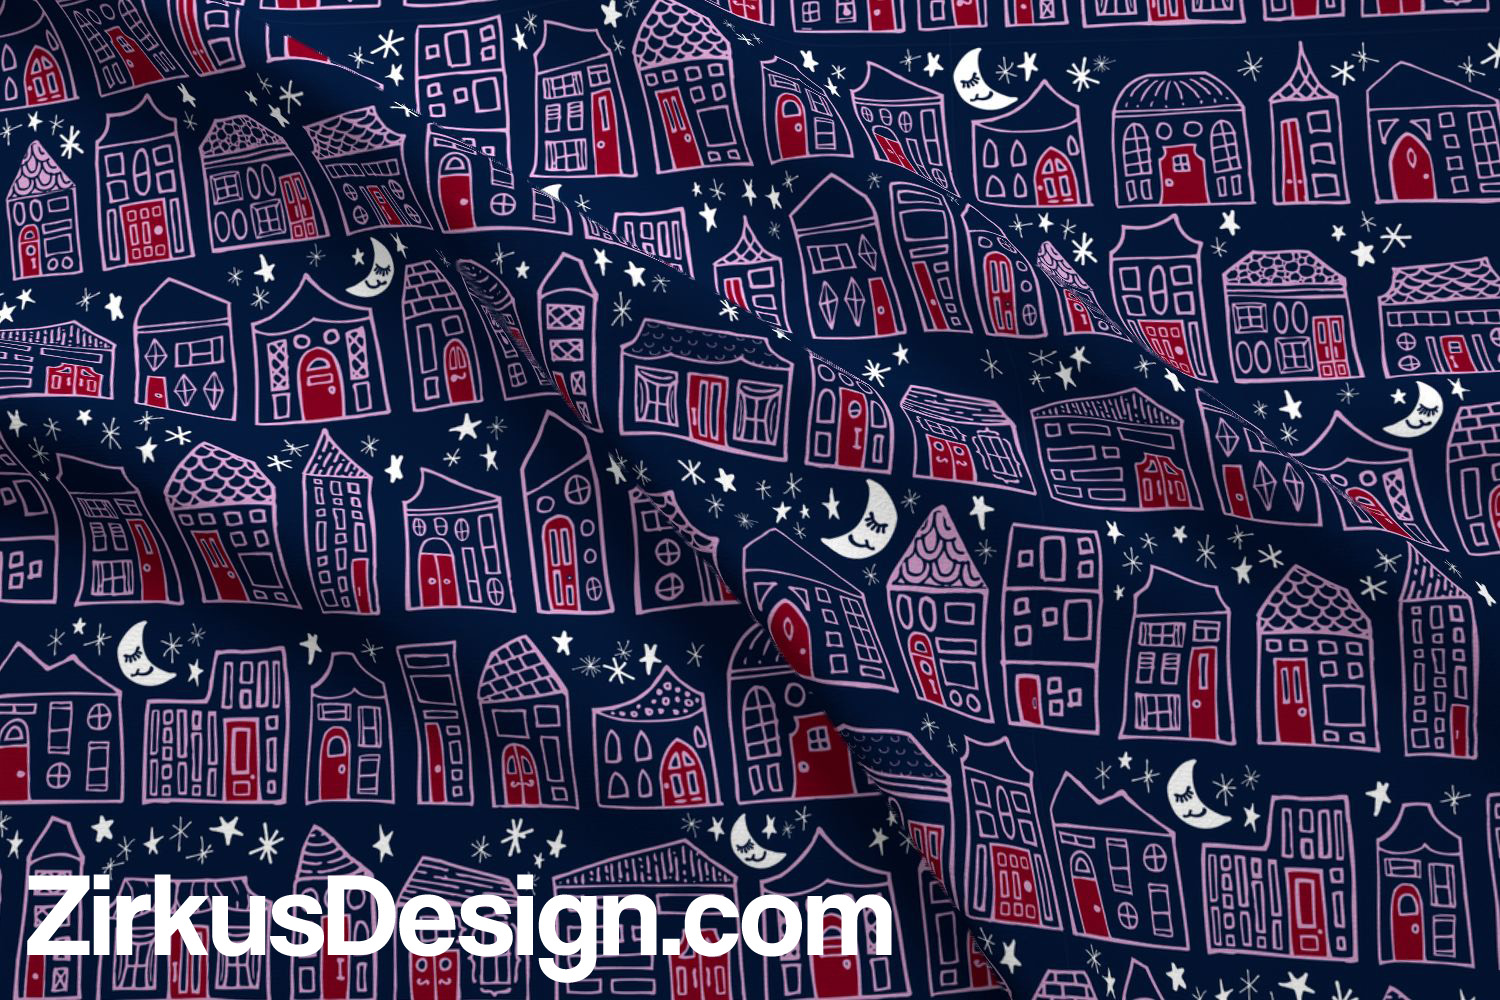 Zirkus Design | Happy City Pattern Collection - Welcome Home! - in Navy, Orchid, and Maroon